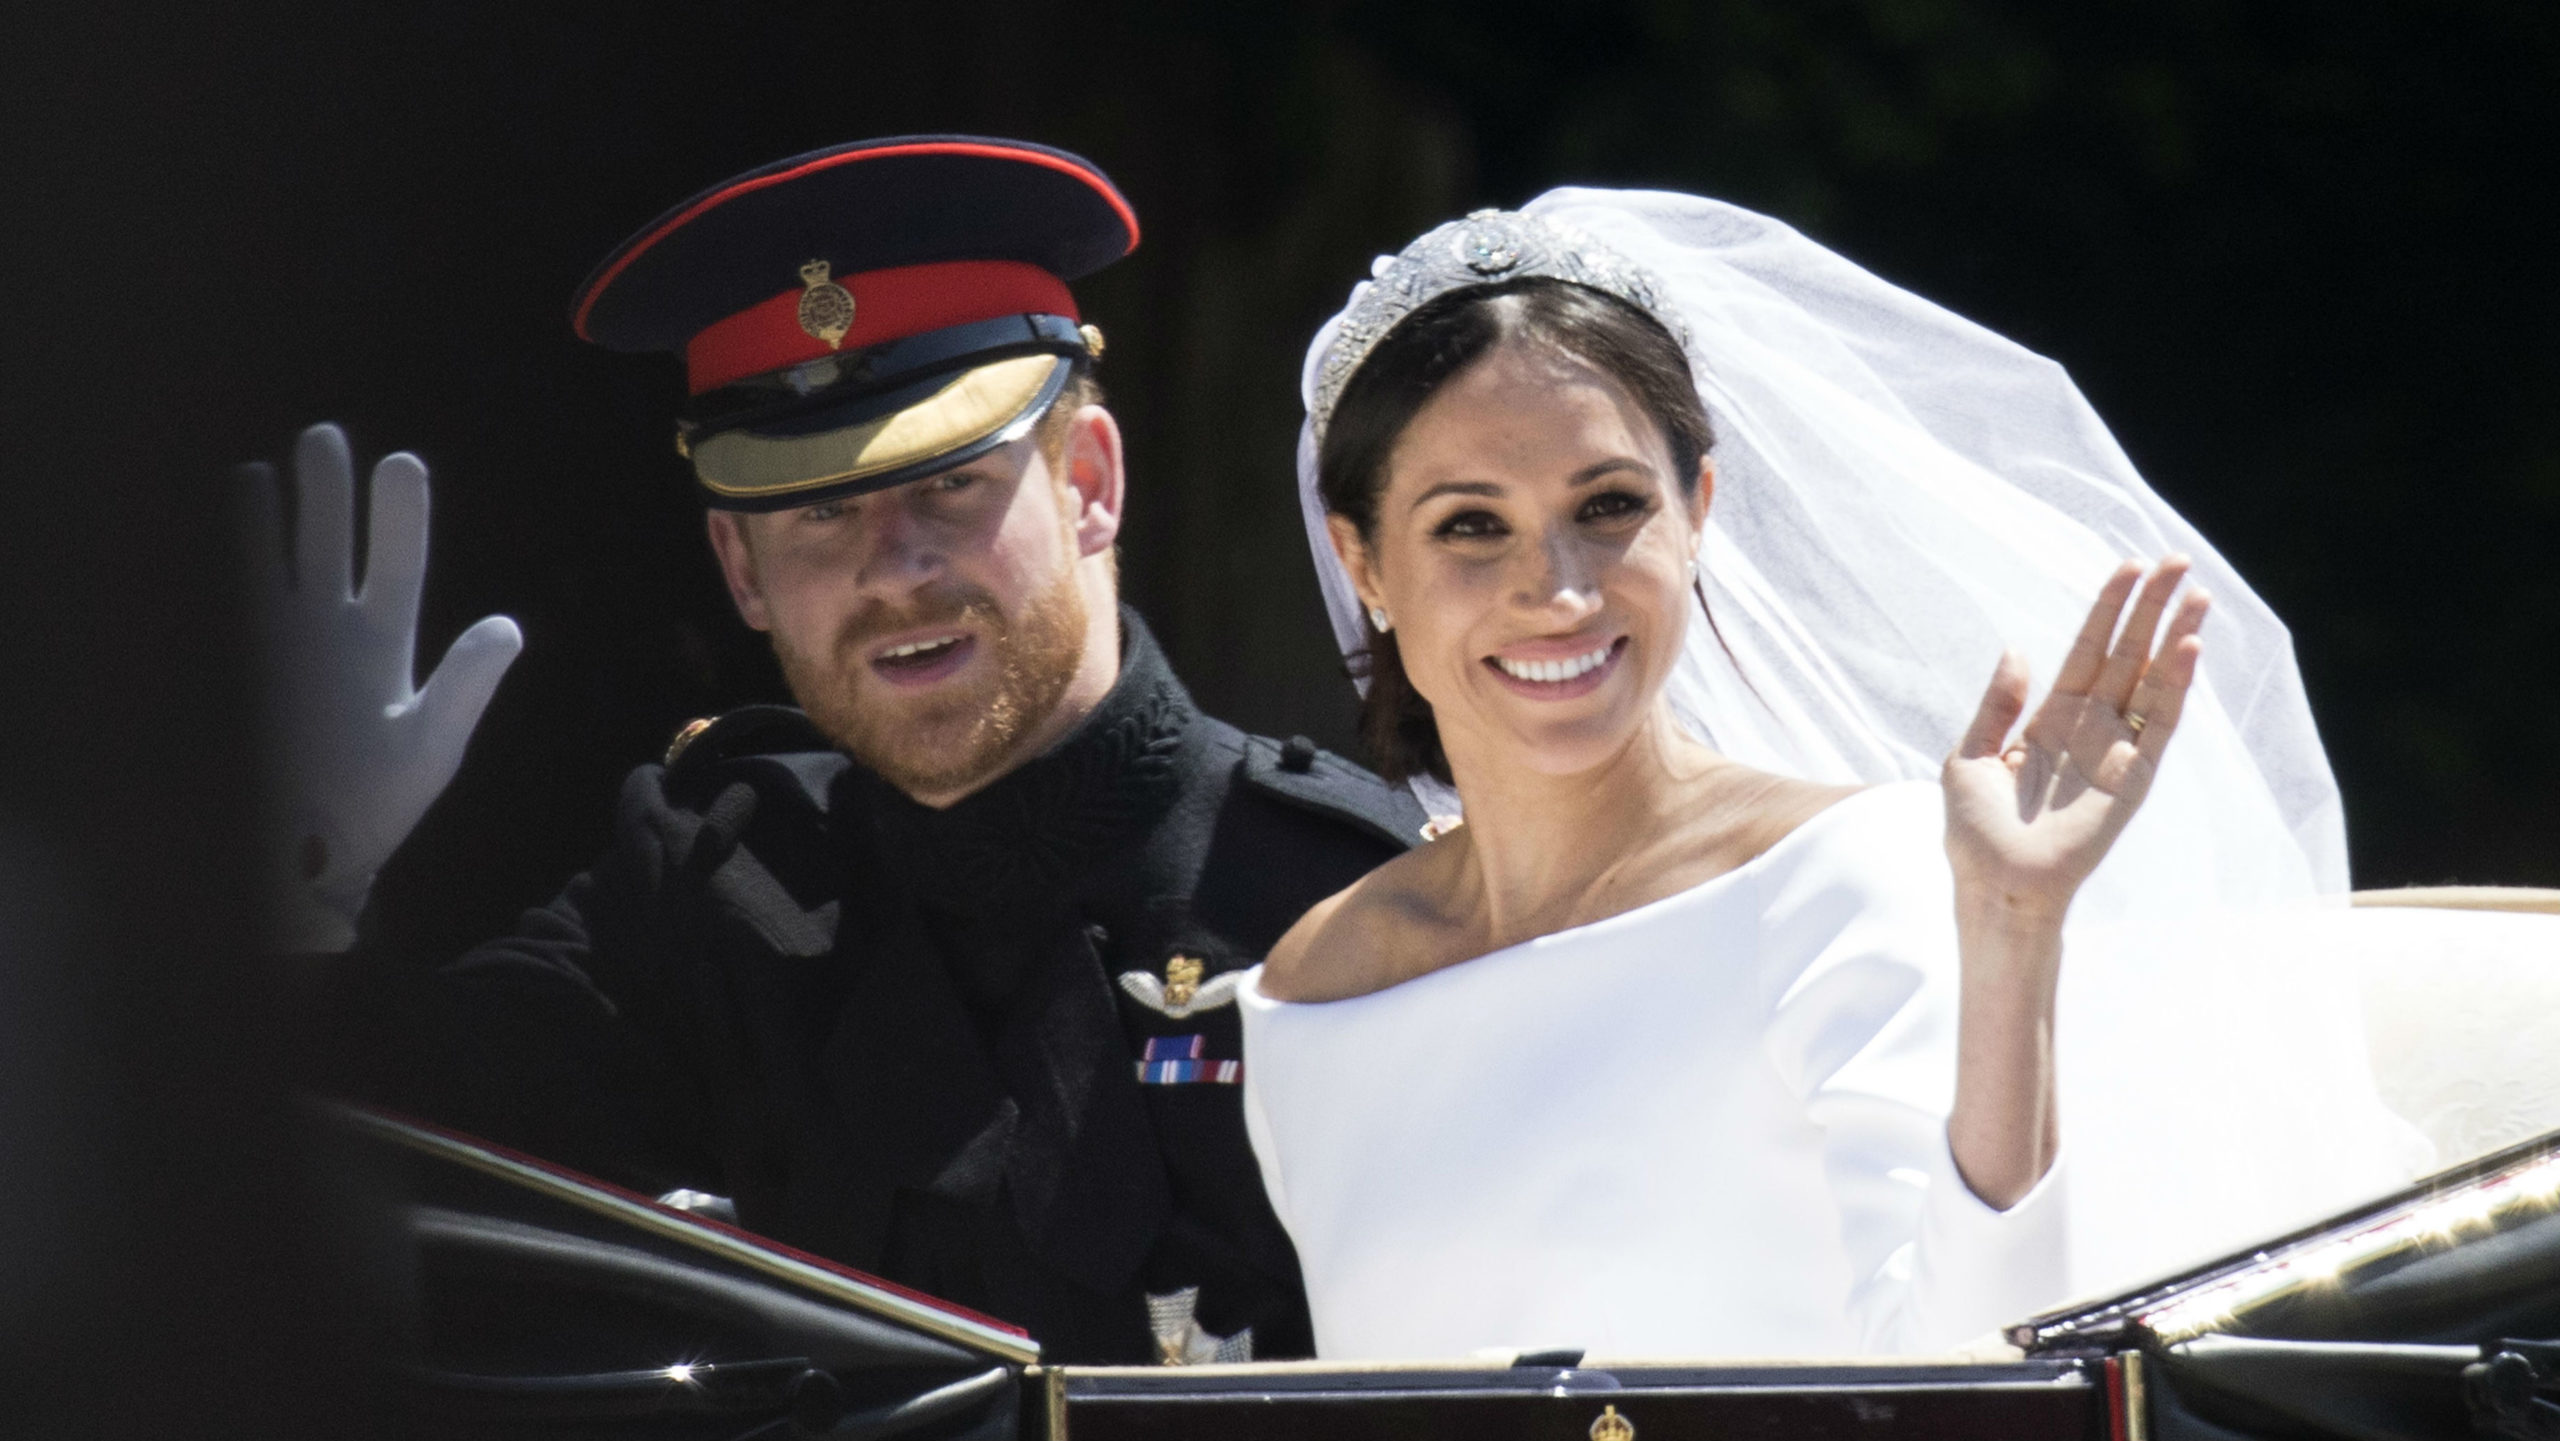 Duke and Duchess of Sussex have left the Royal Status